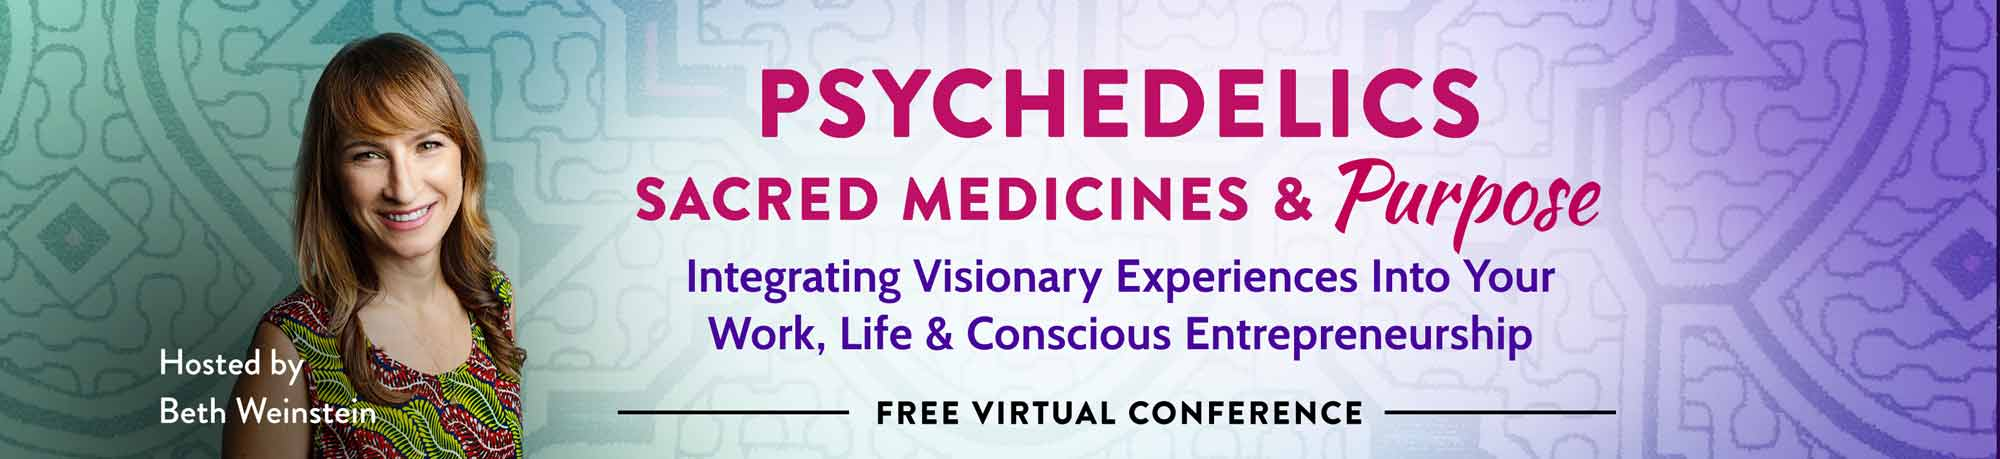 Psychedelics, Sacred Medicine & Purpose: Integrating visionary Experiences into Your Work, Life & Conscious Entrepreneurship